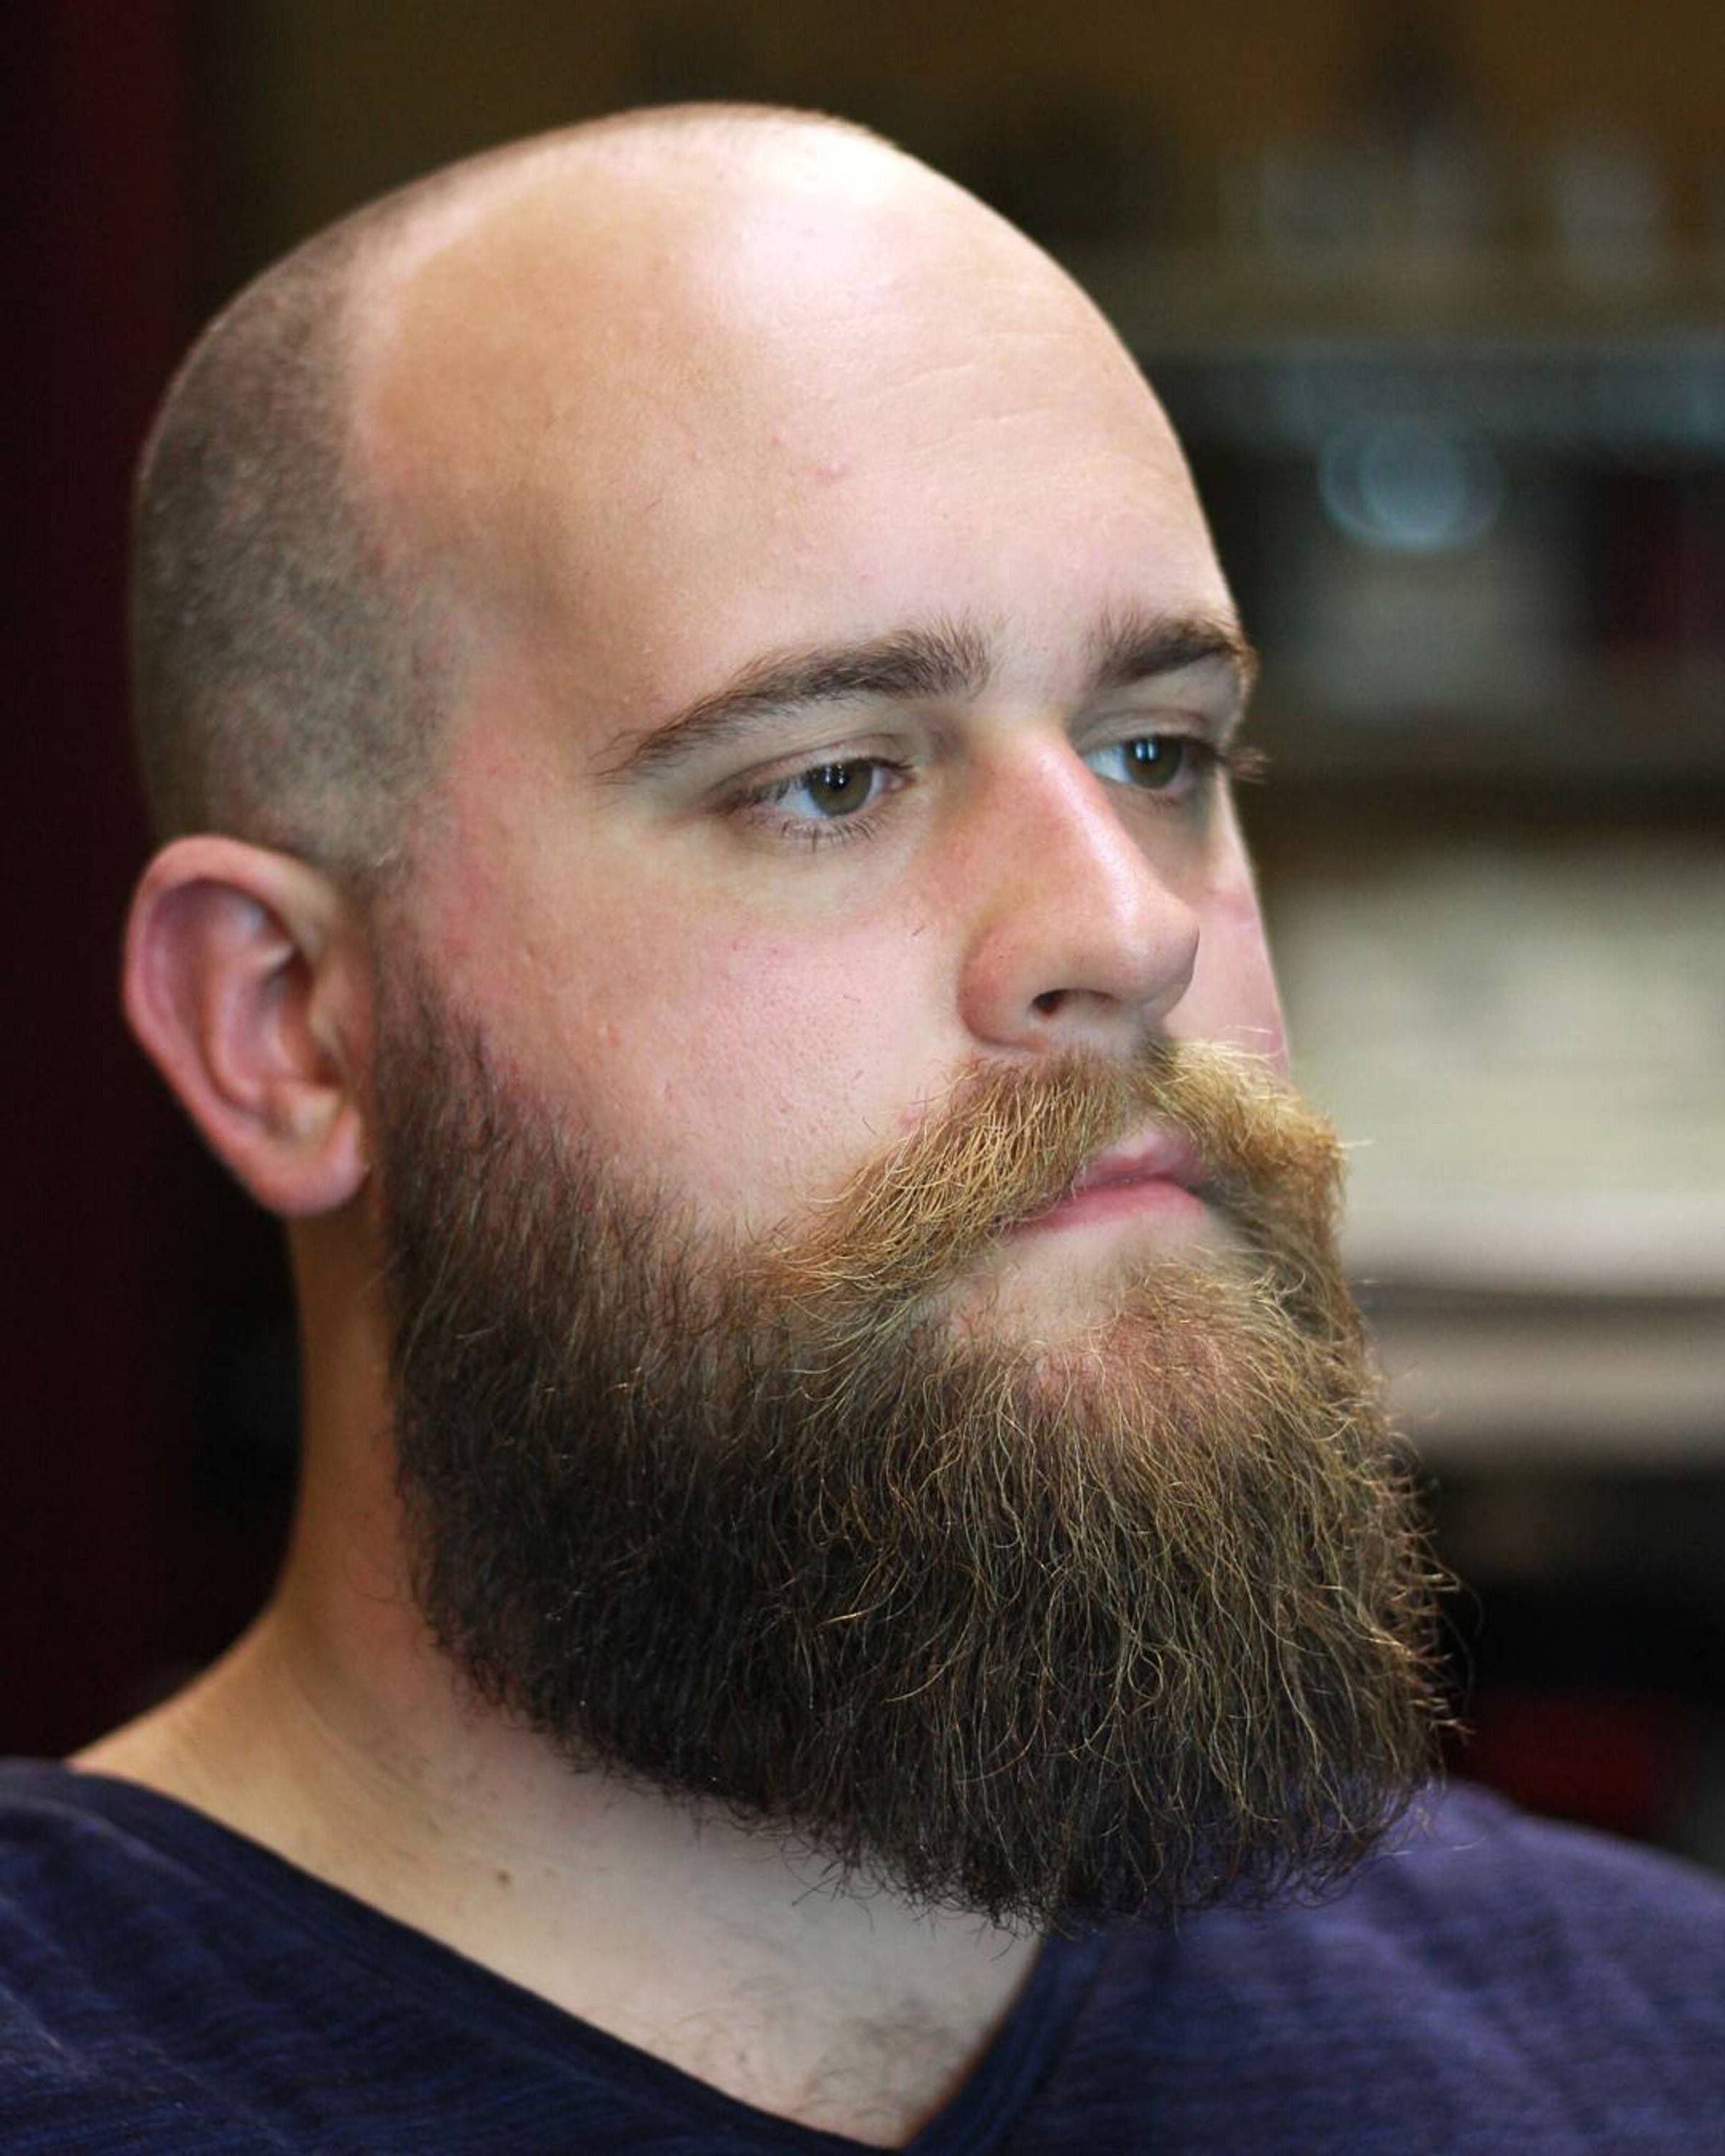 A full beard with a buzz haircut.